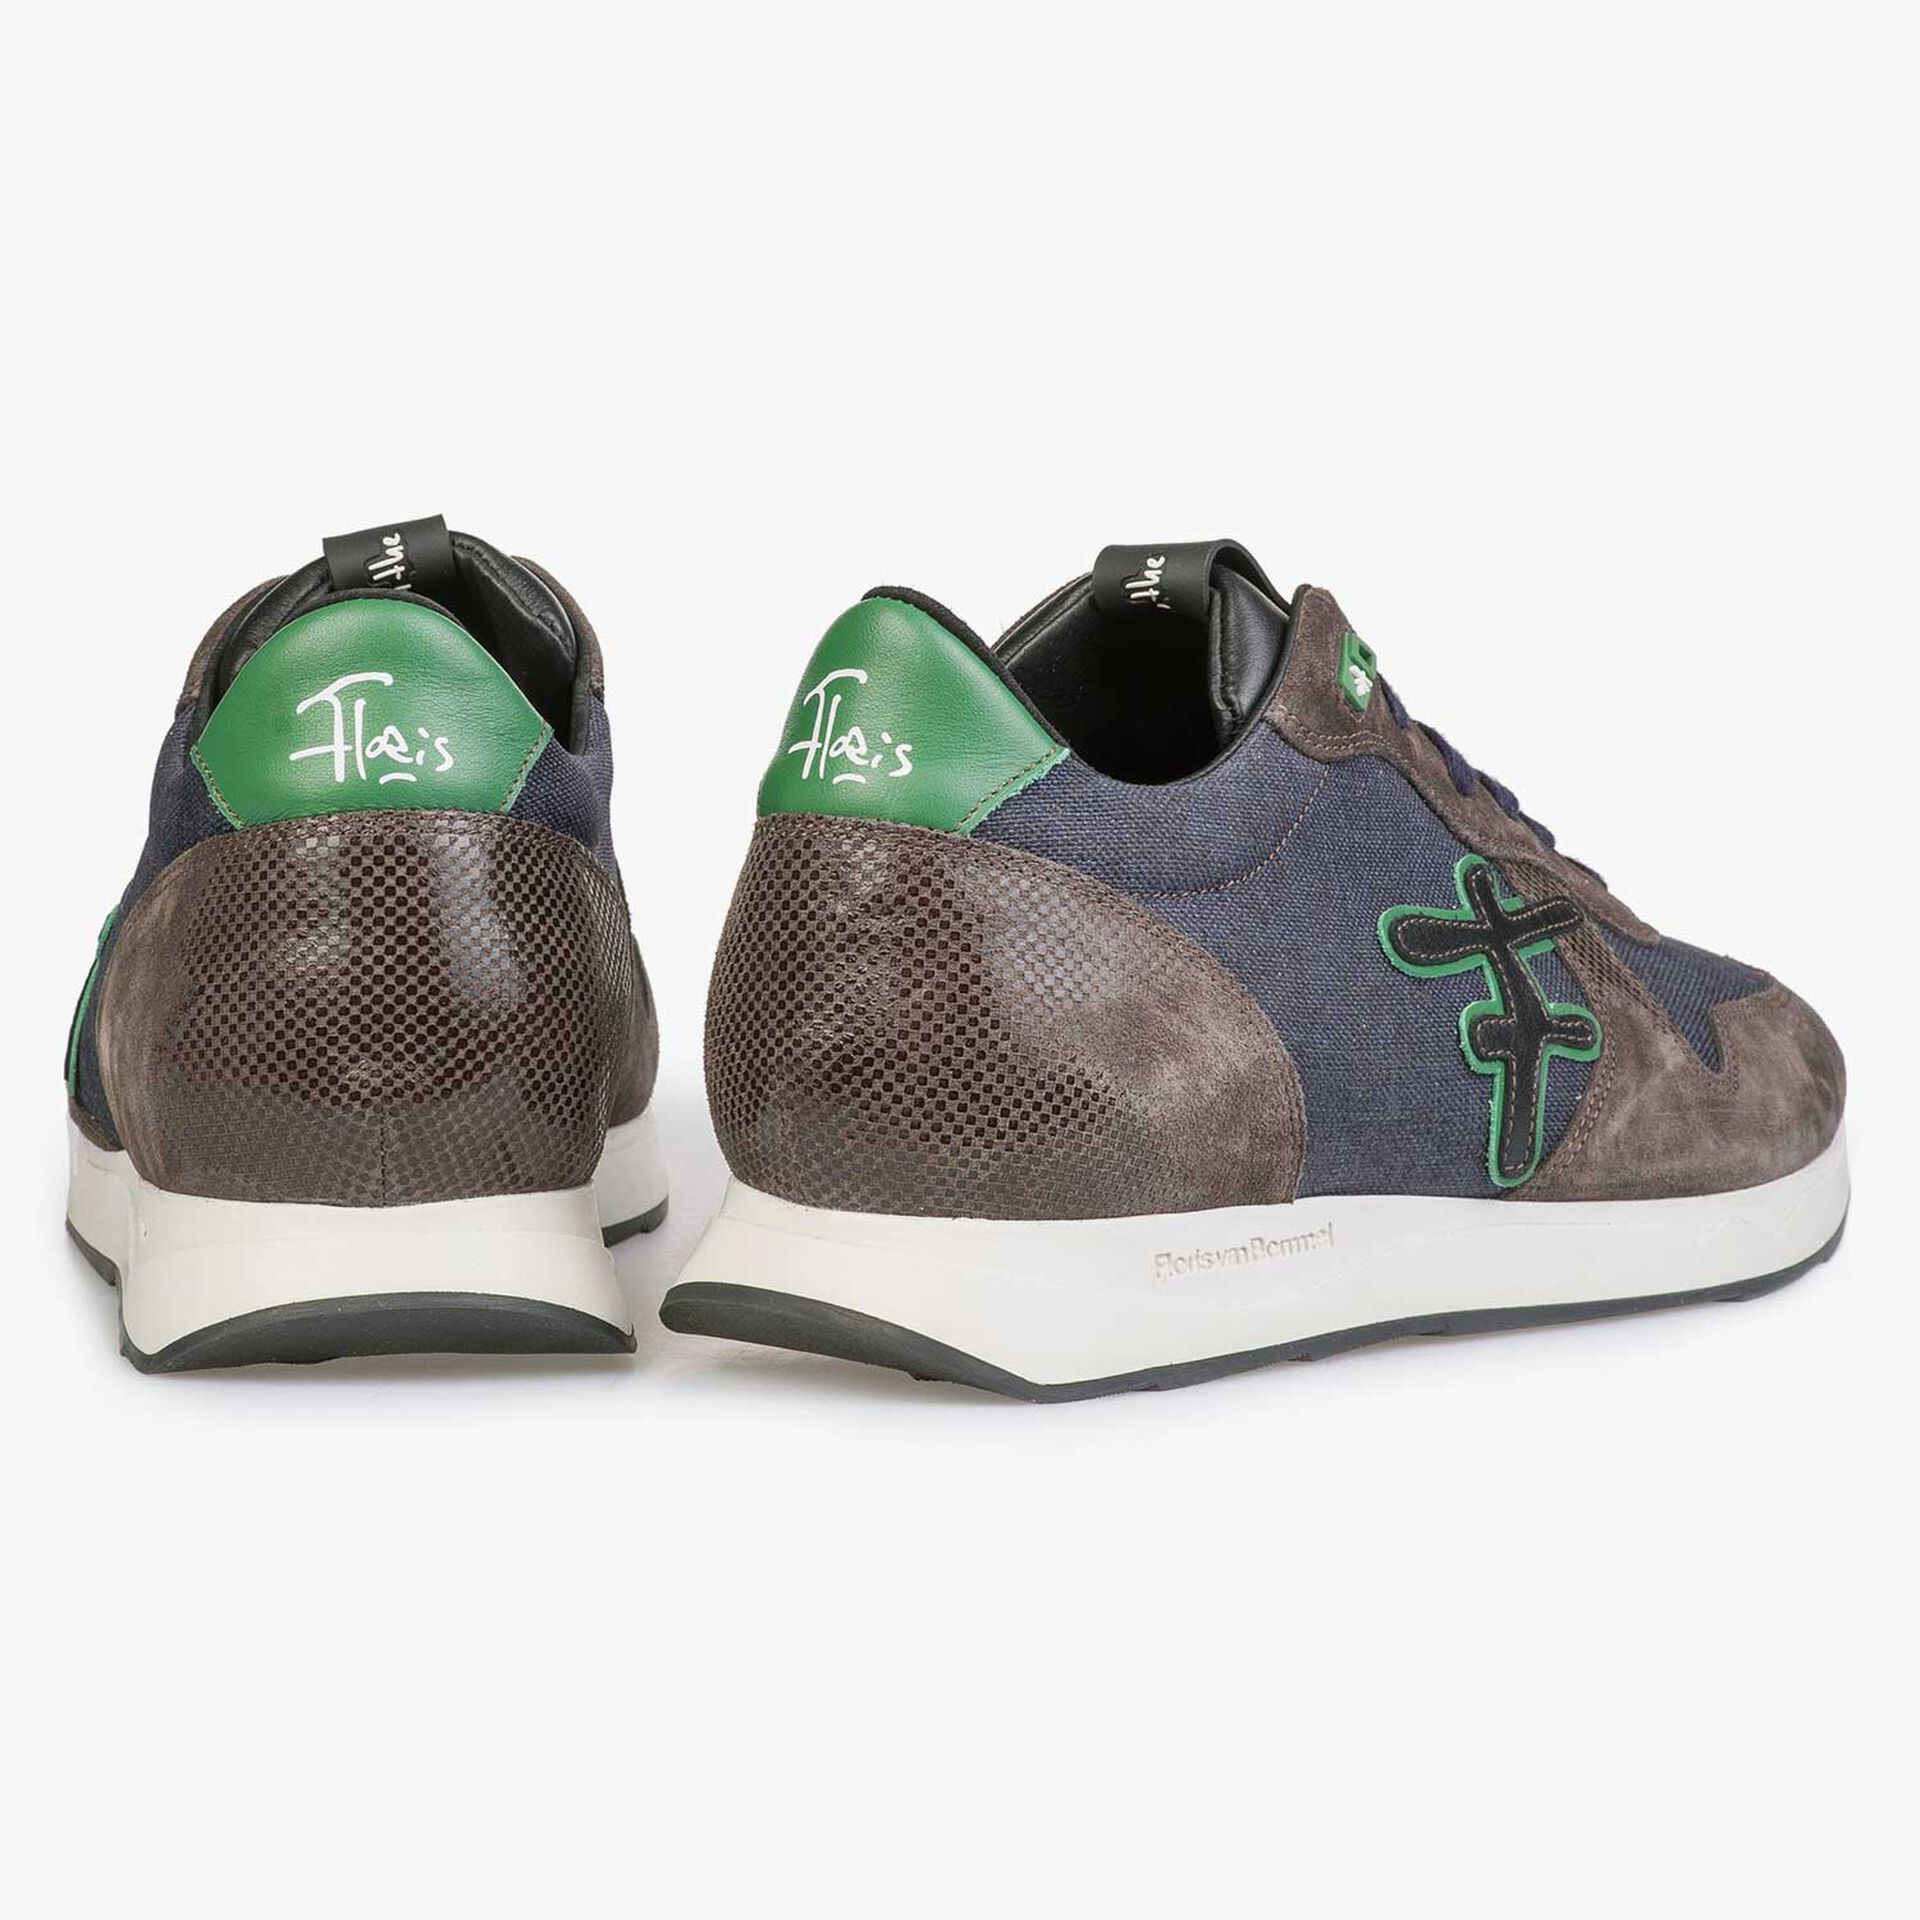 Blue/ Green canvas sneaker with green accents